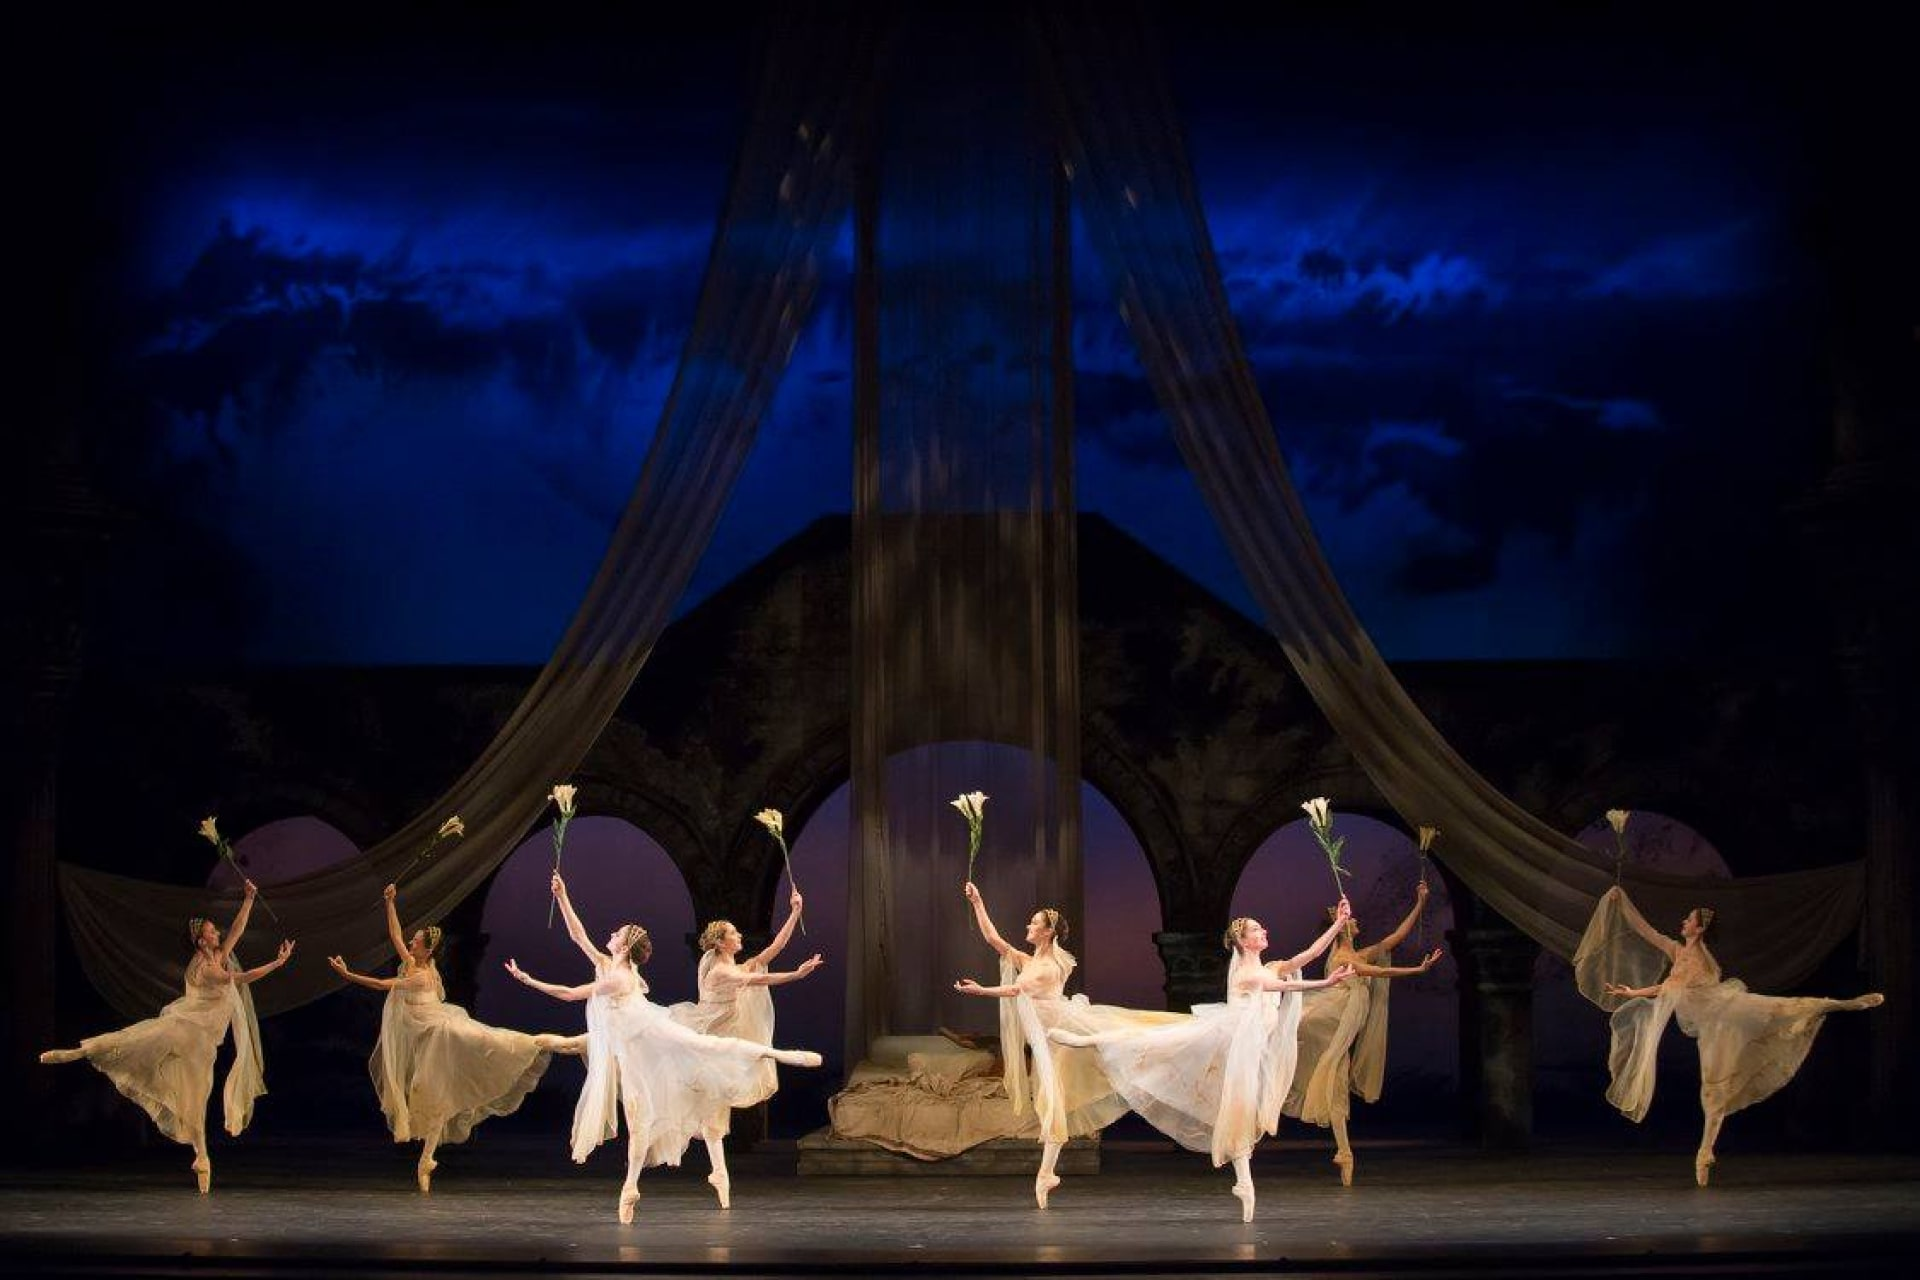 Chorus of ballerinas in white sheer dresses dance on point holding lilies in front of bridal bed, bridge, and sunrise sky.